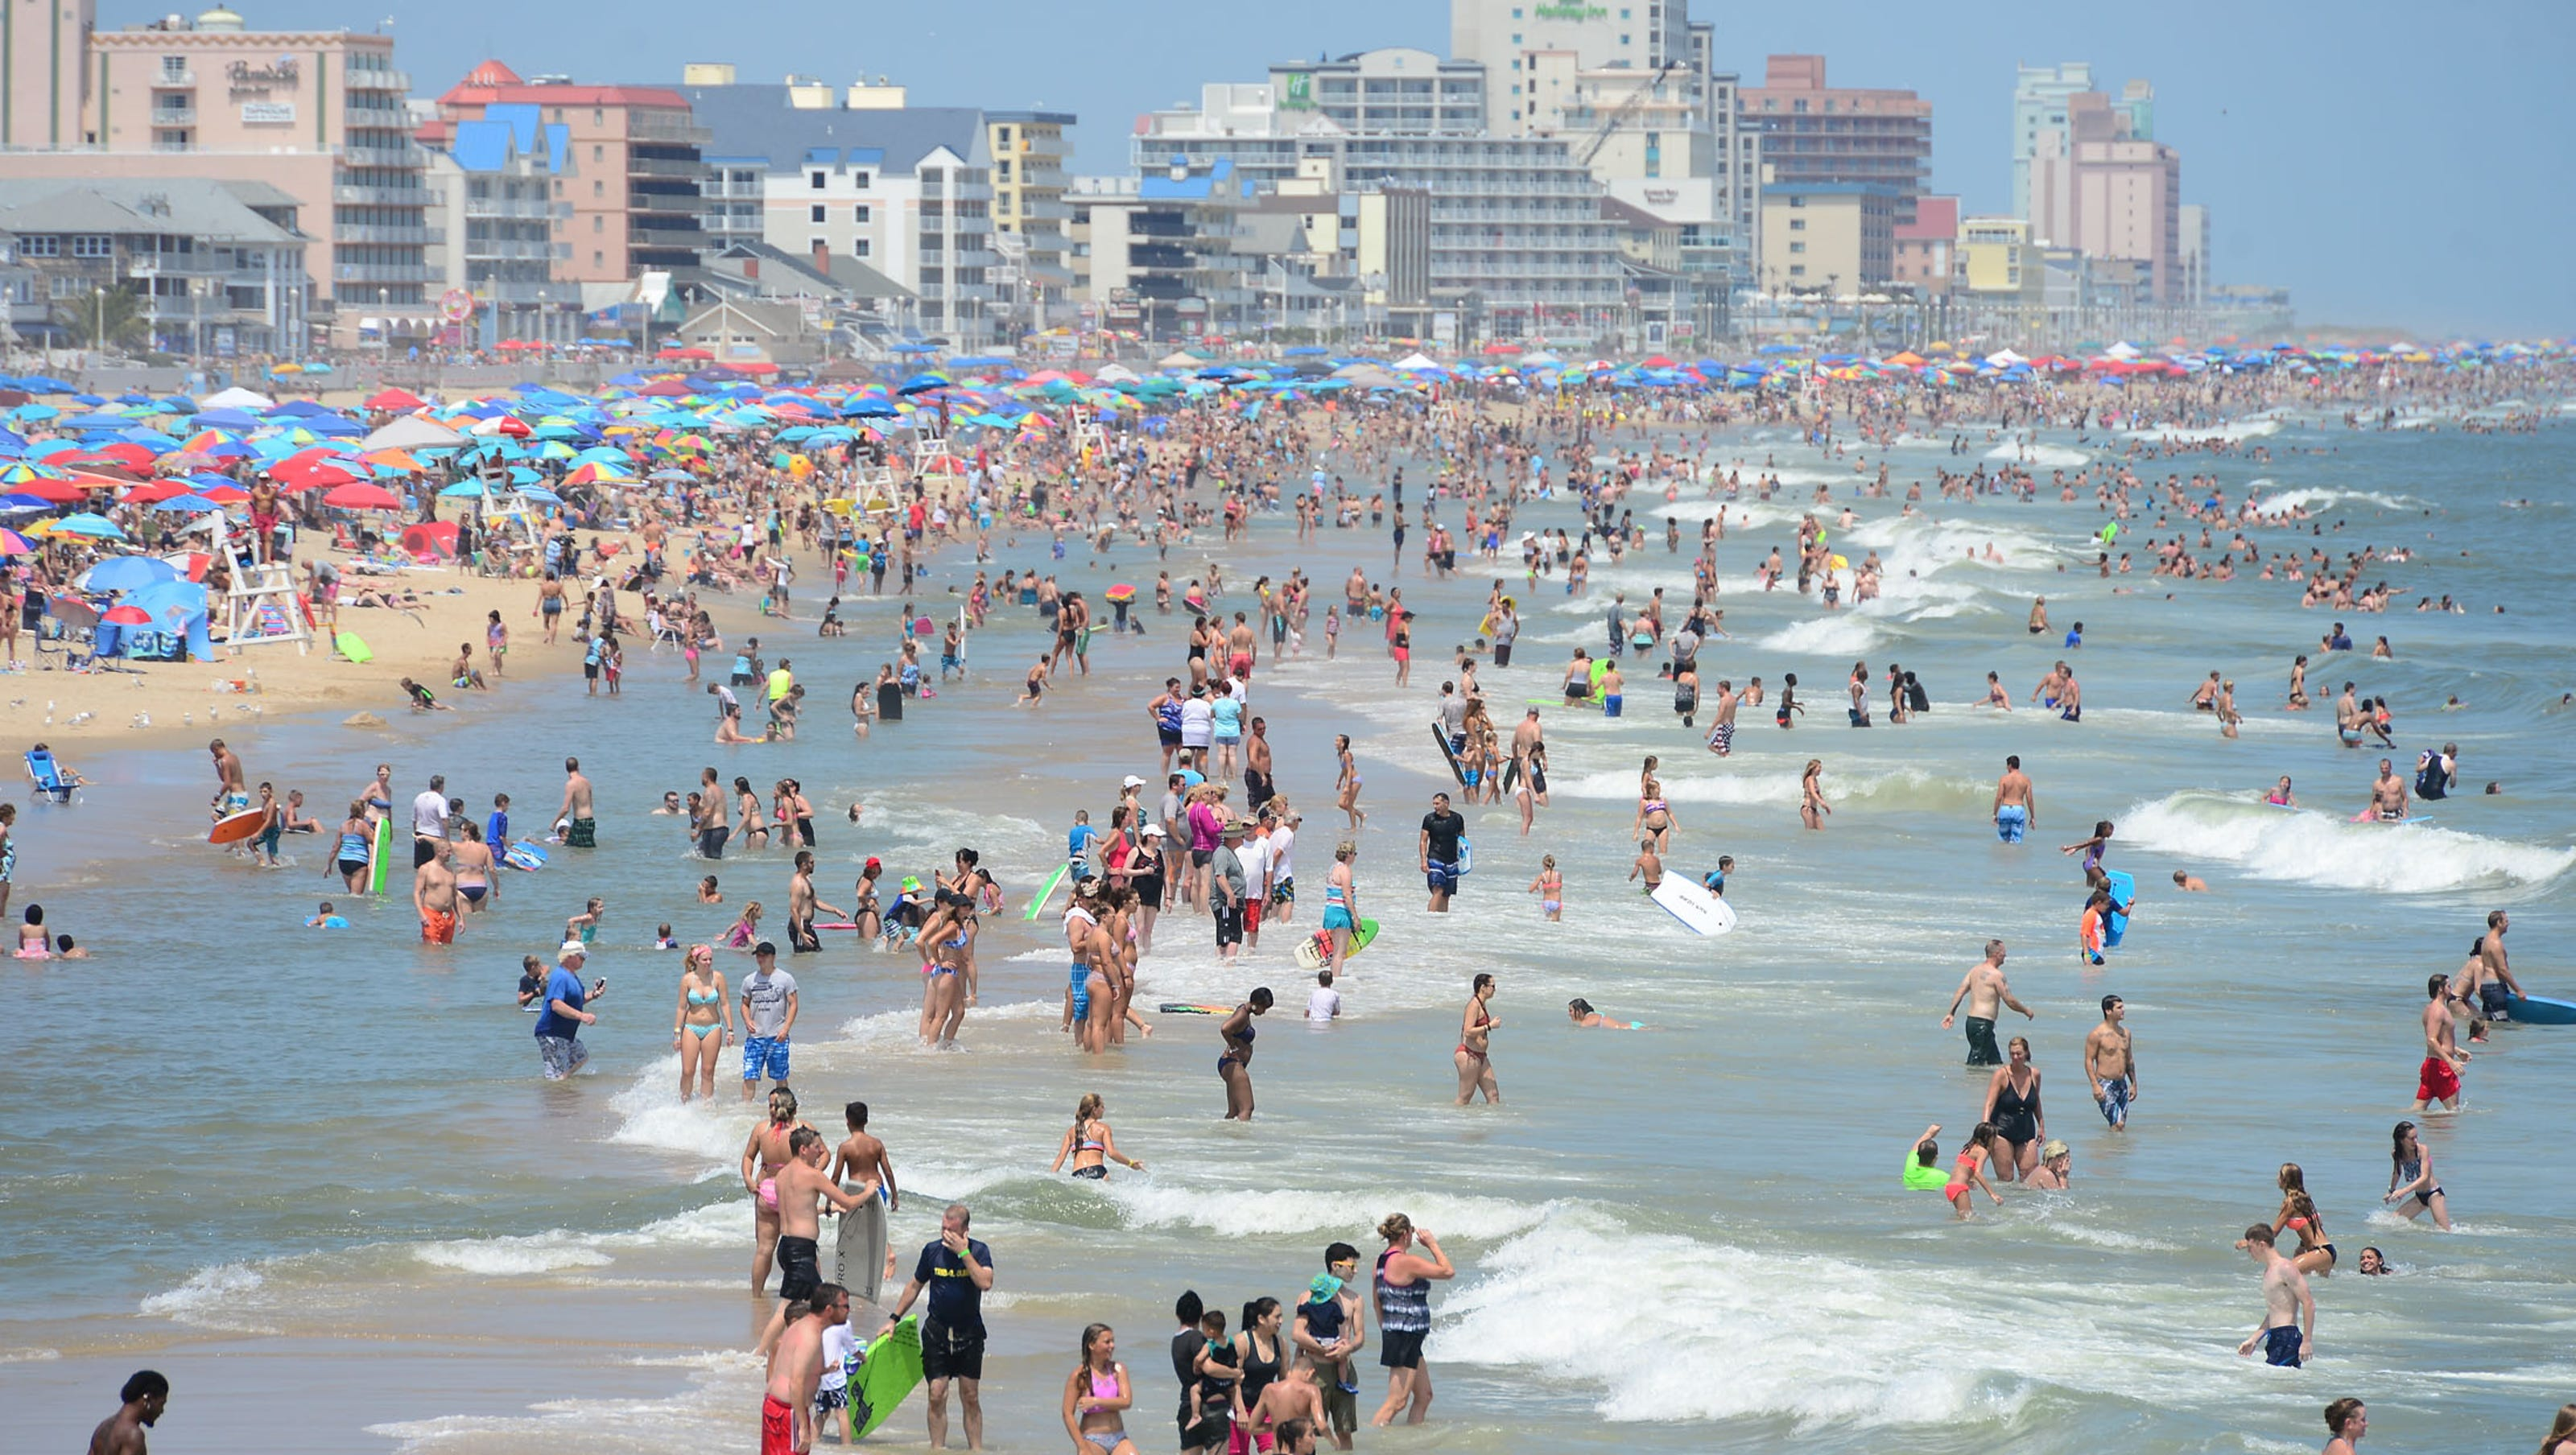 Ocean City topless lawsuit: Judge to give ruling after hearing testimony